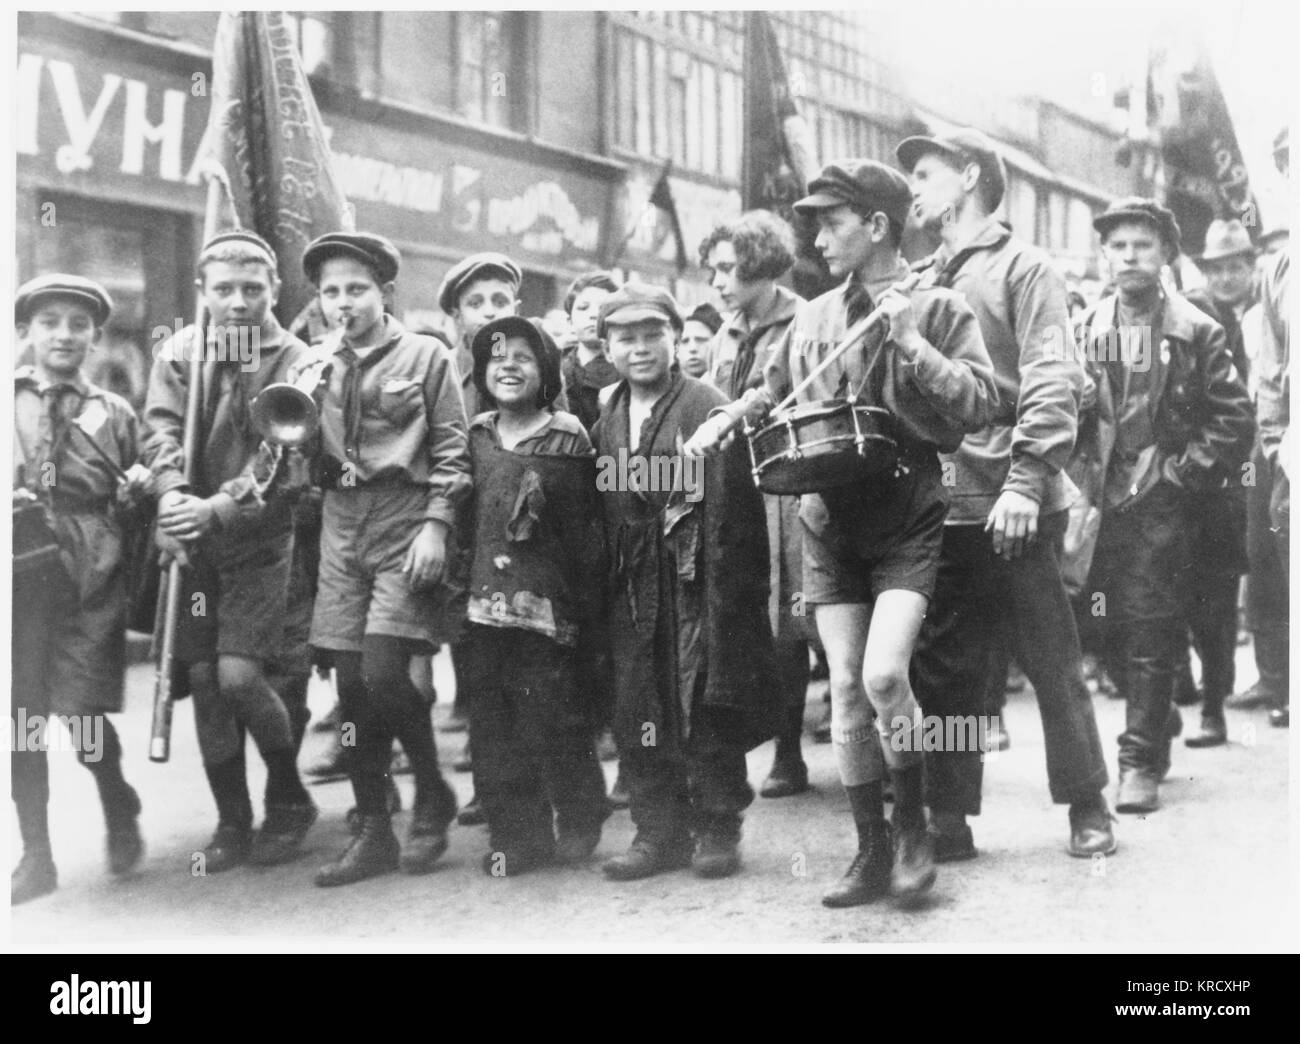 A group of children taking  part in the May Day Parade in  Moscow 1929        Date: 1929 - Stock Image